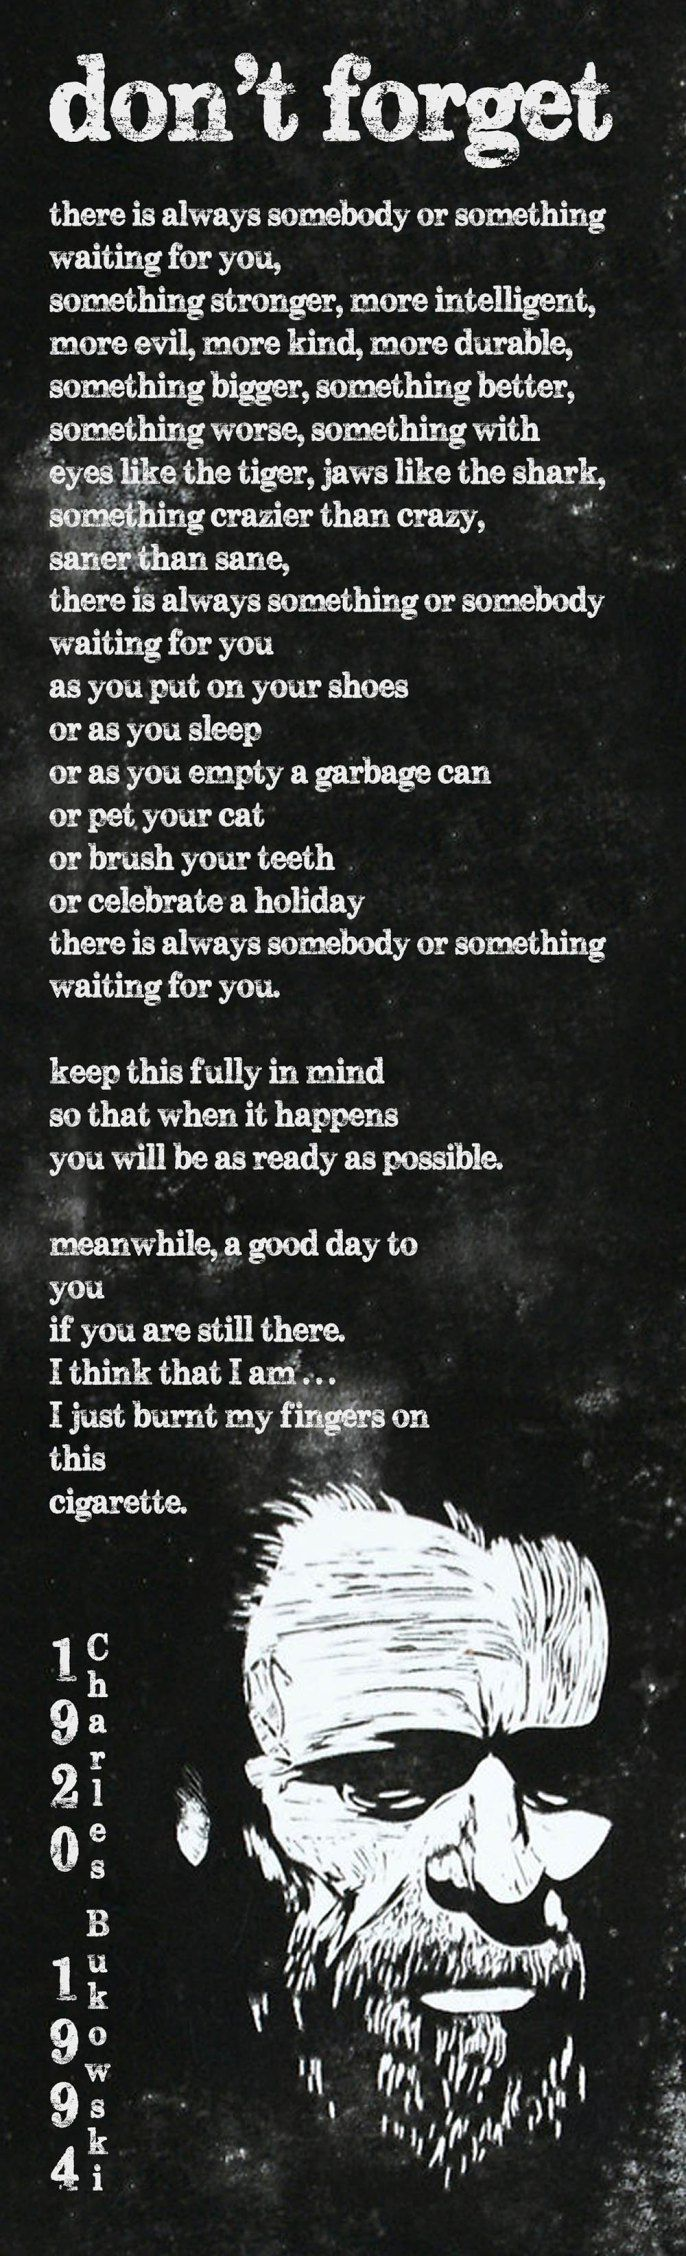 charles bukowski.  and sometimes even when you think you're ready, you're not